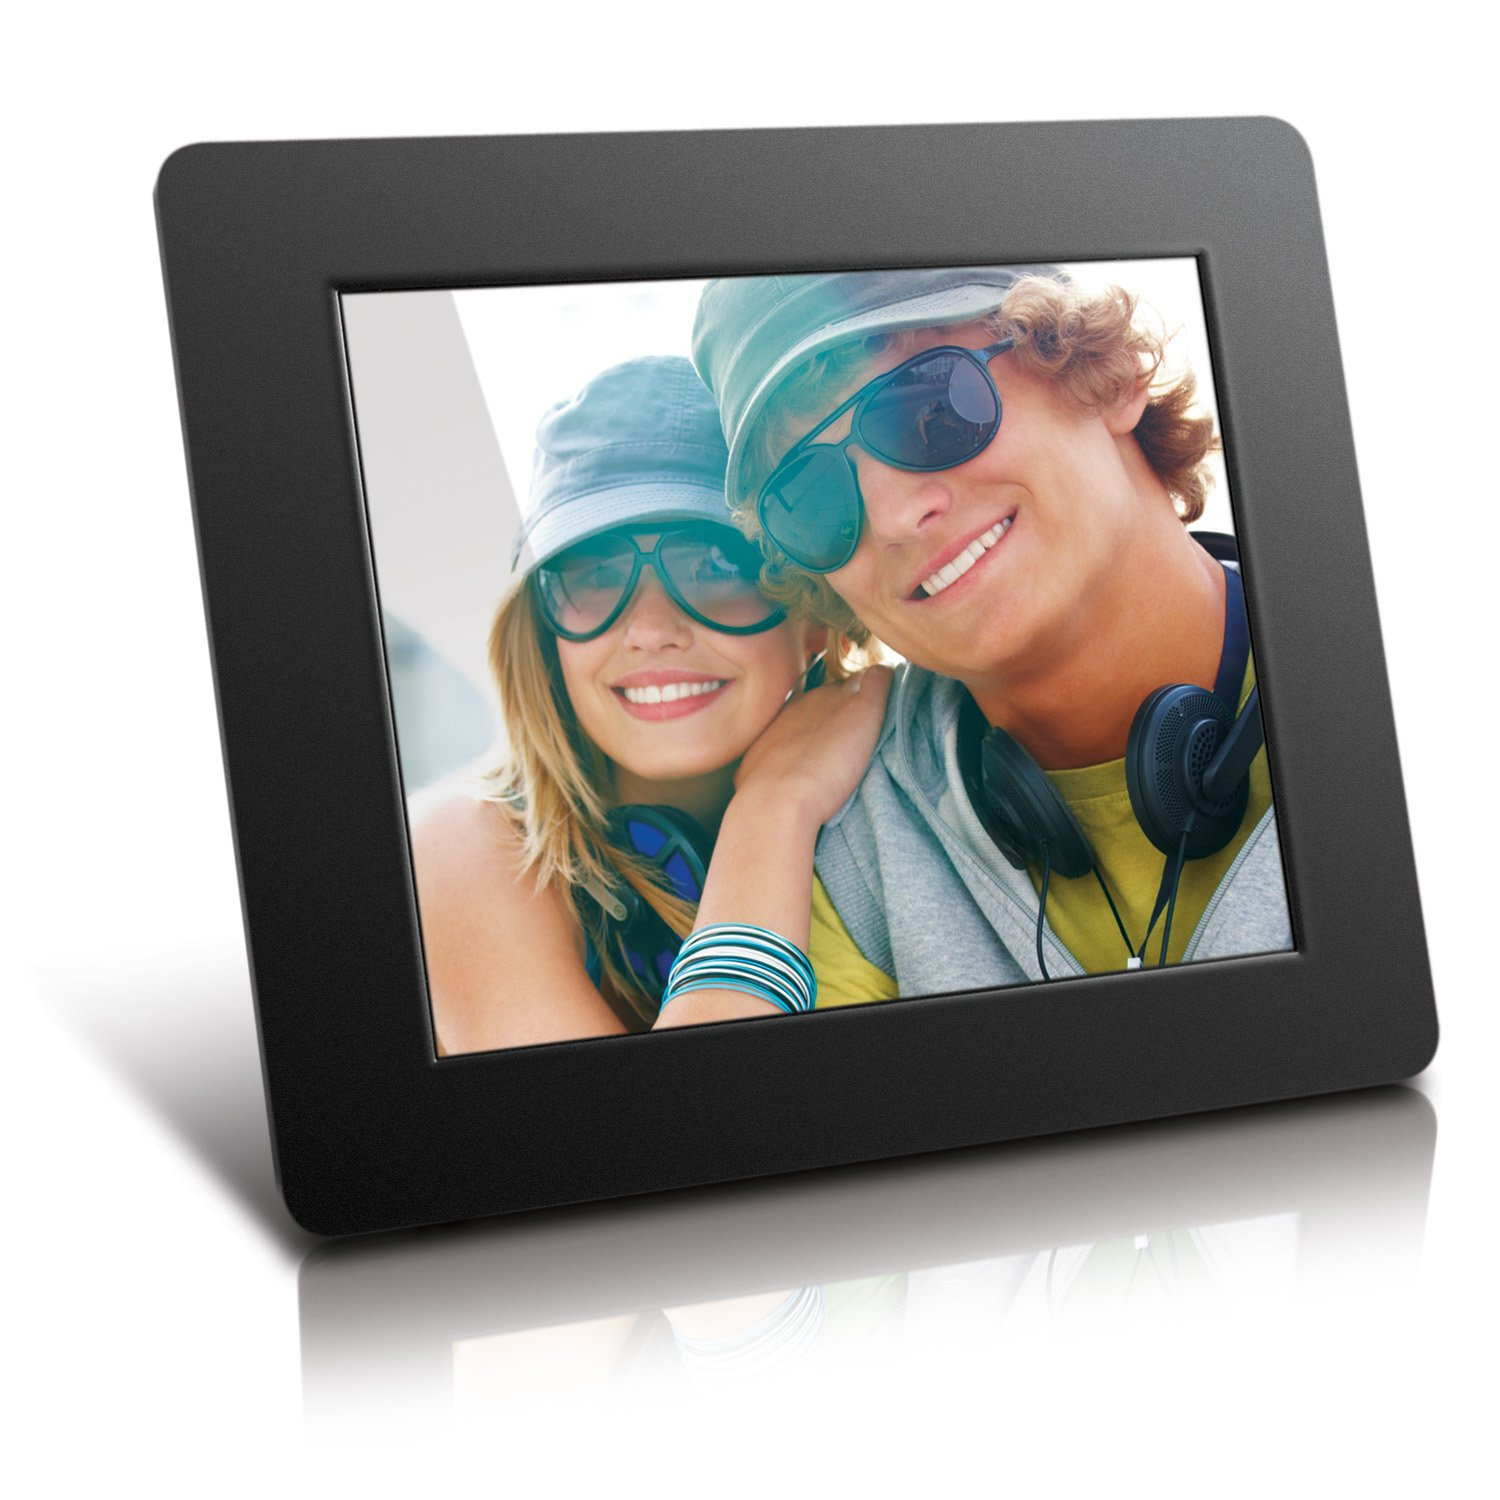 amazoncom aluratek adpf08sf 8 inch digital photo frame 800x600 hi resolution digital picture frames camera photo